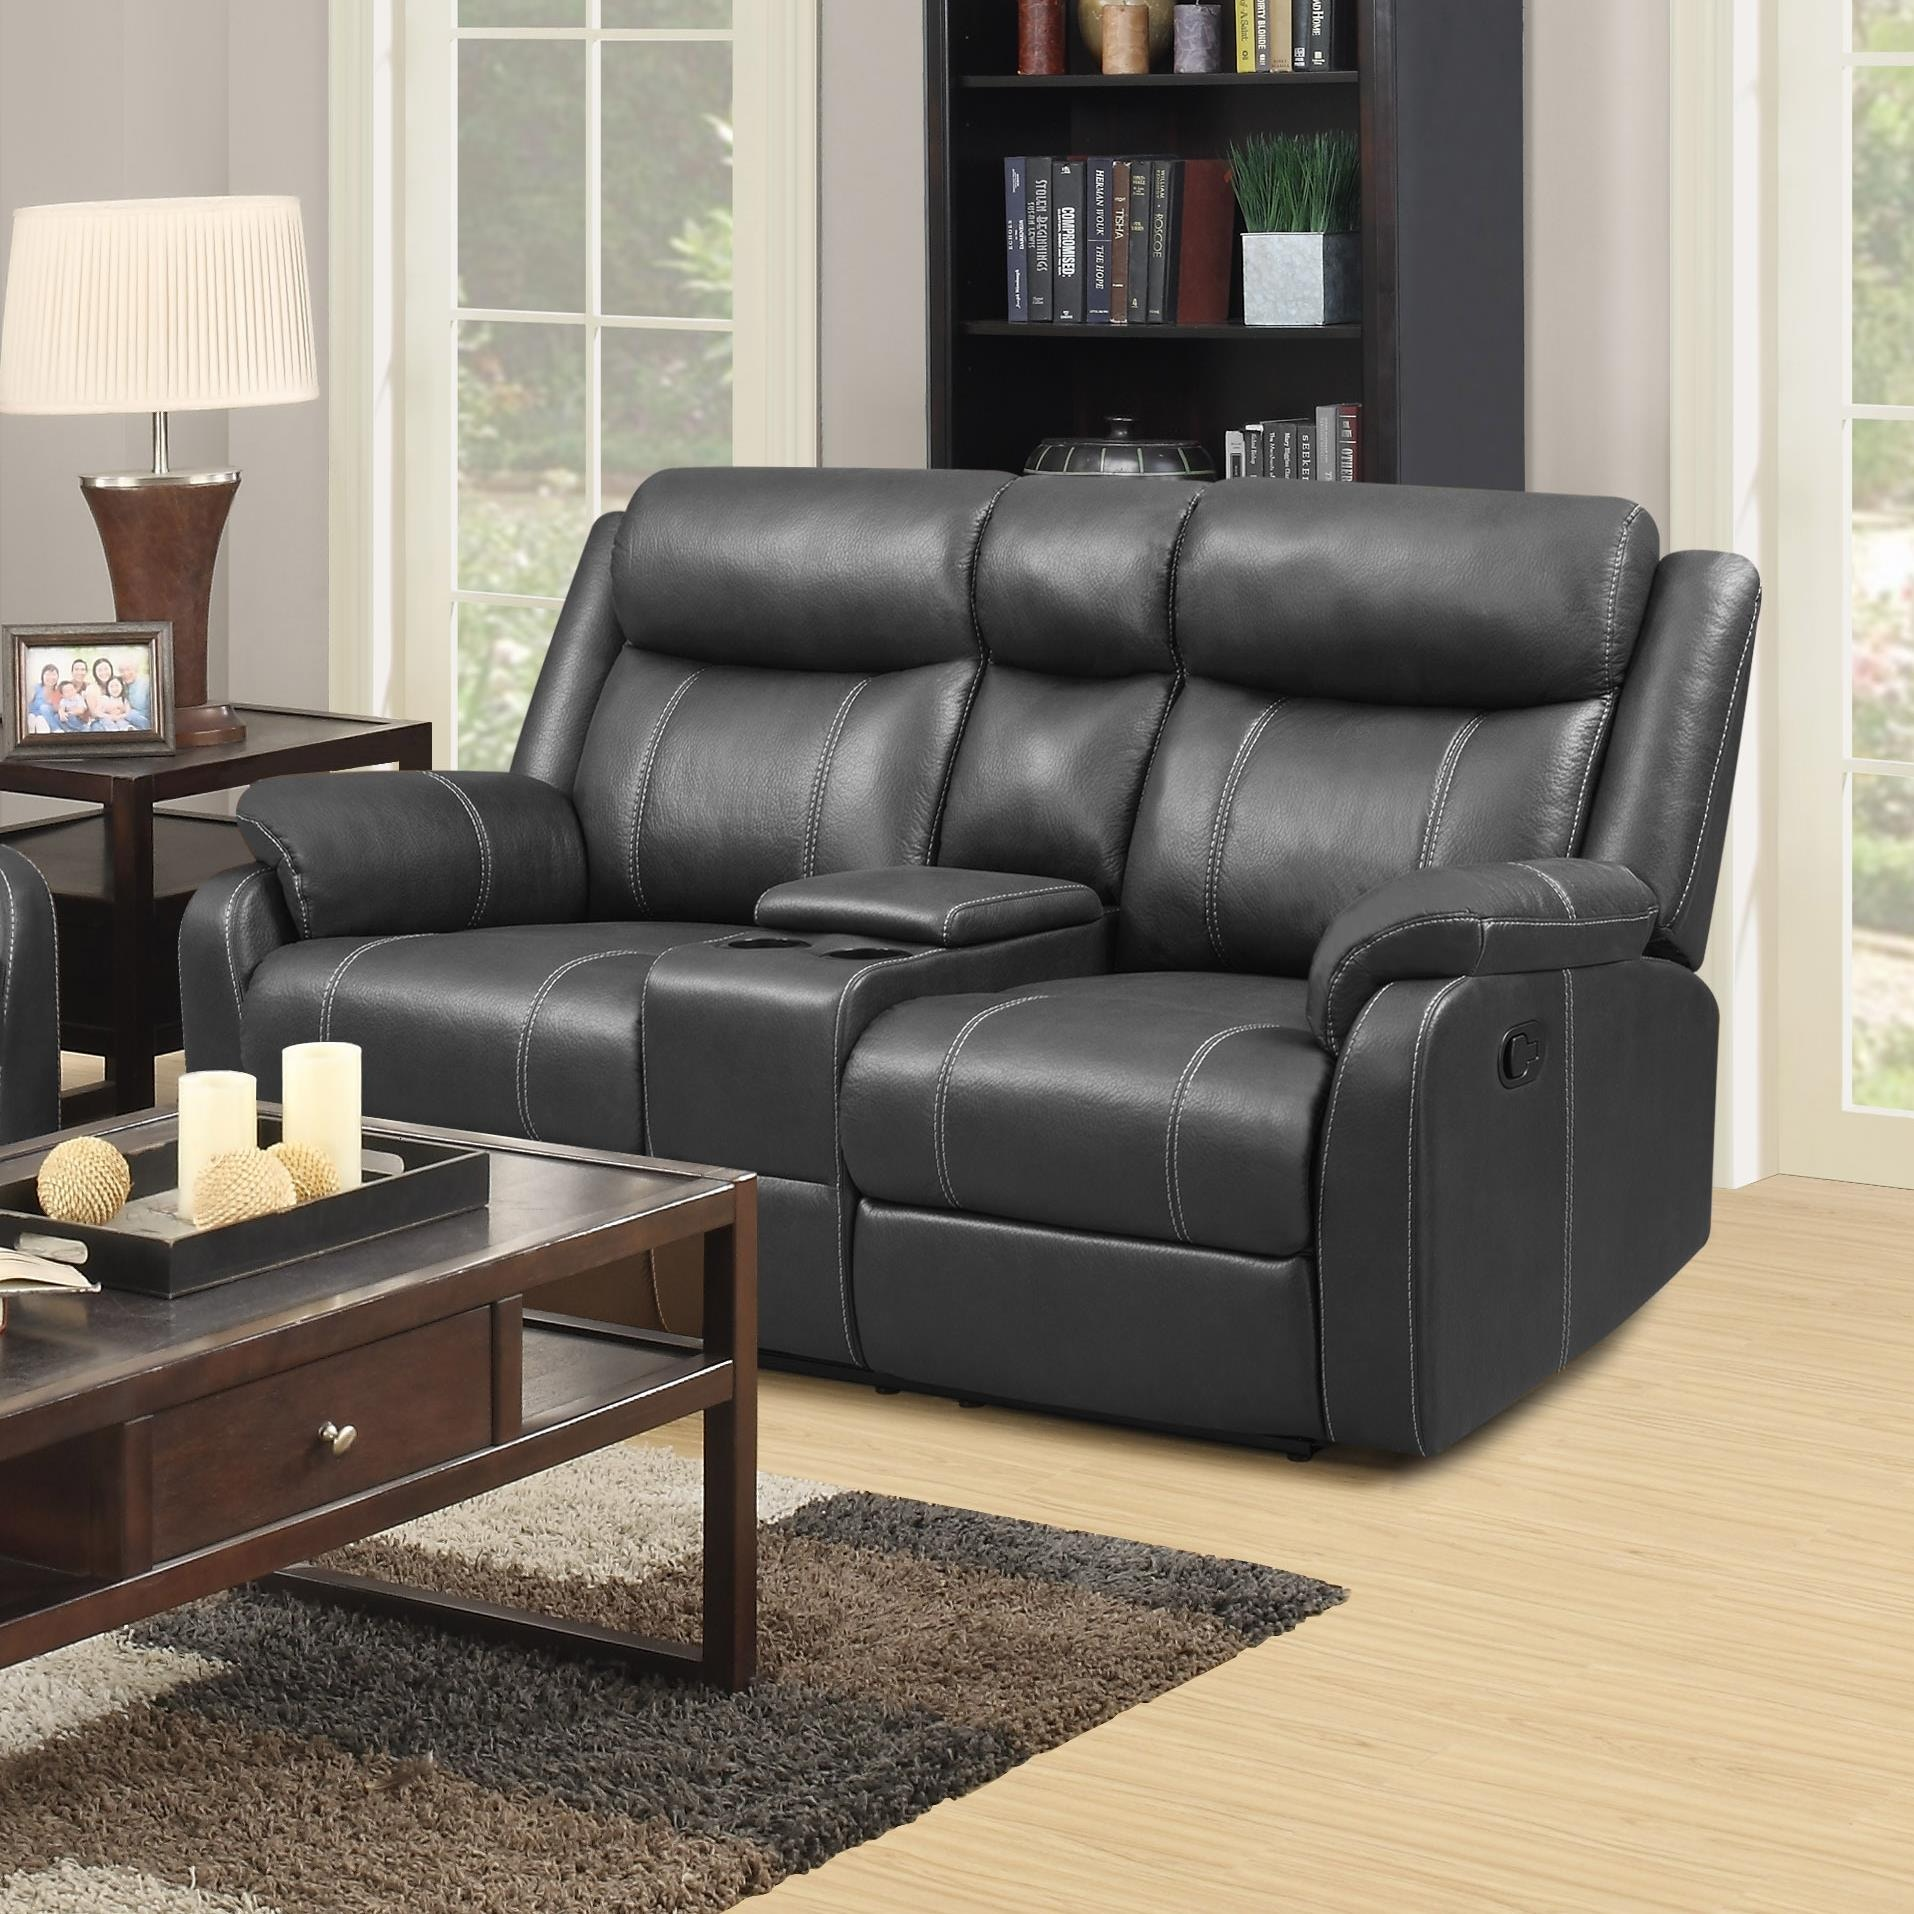 Simple Elegance Reclining Loveseat With Center Console Domino Reclining  Loveseat